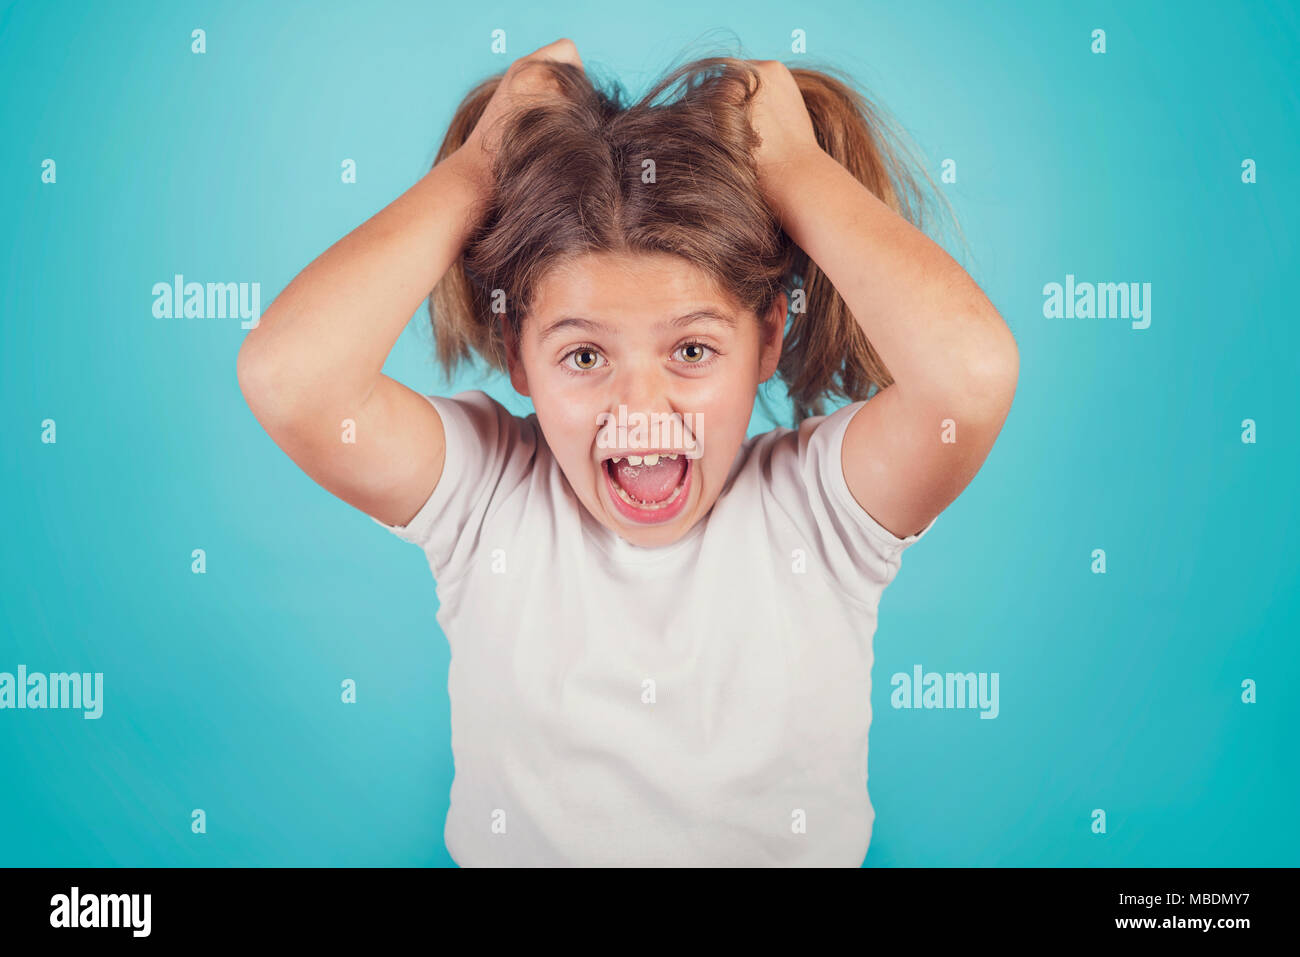 portrait of angry girl on blue background - Stock Image